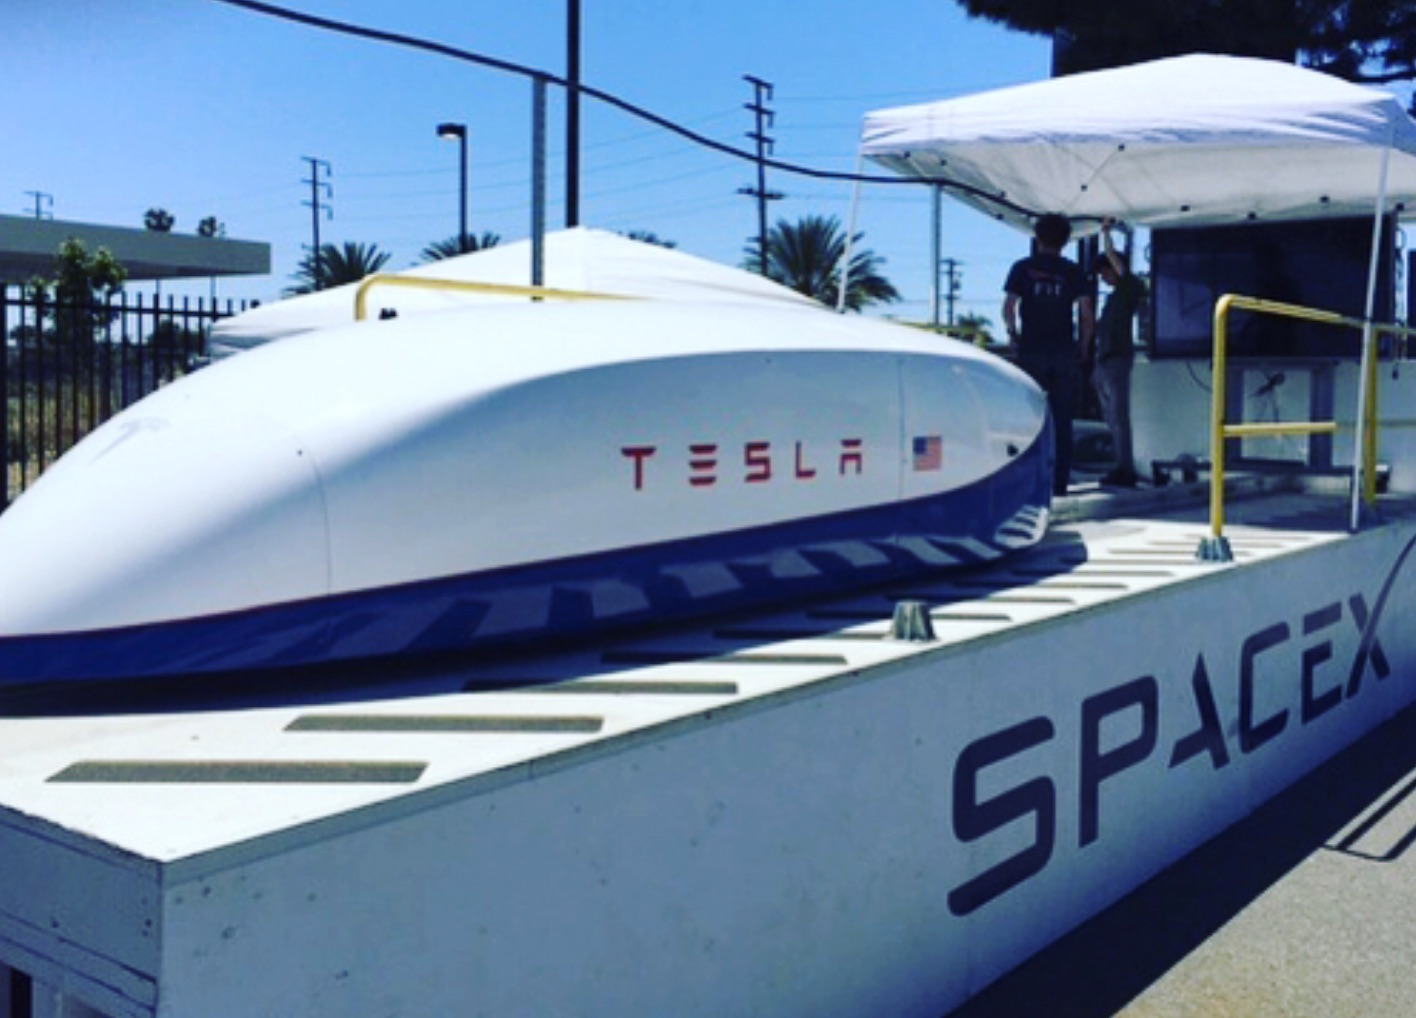 spacexteslas hyperloop pod will attempt to reach 12 speed of sound